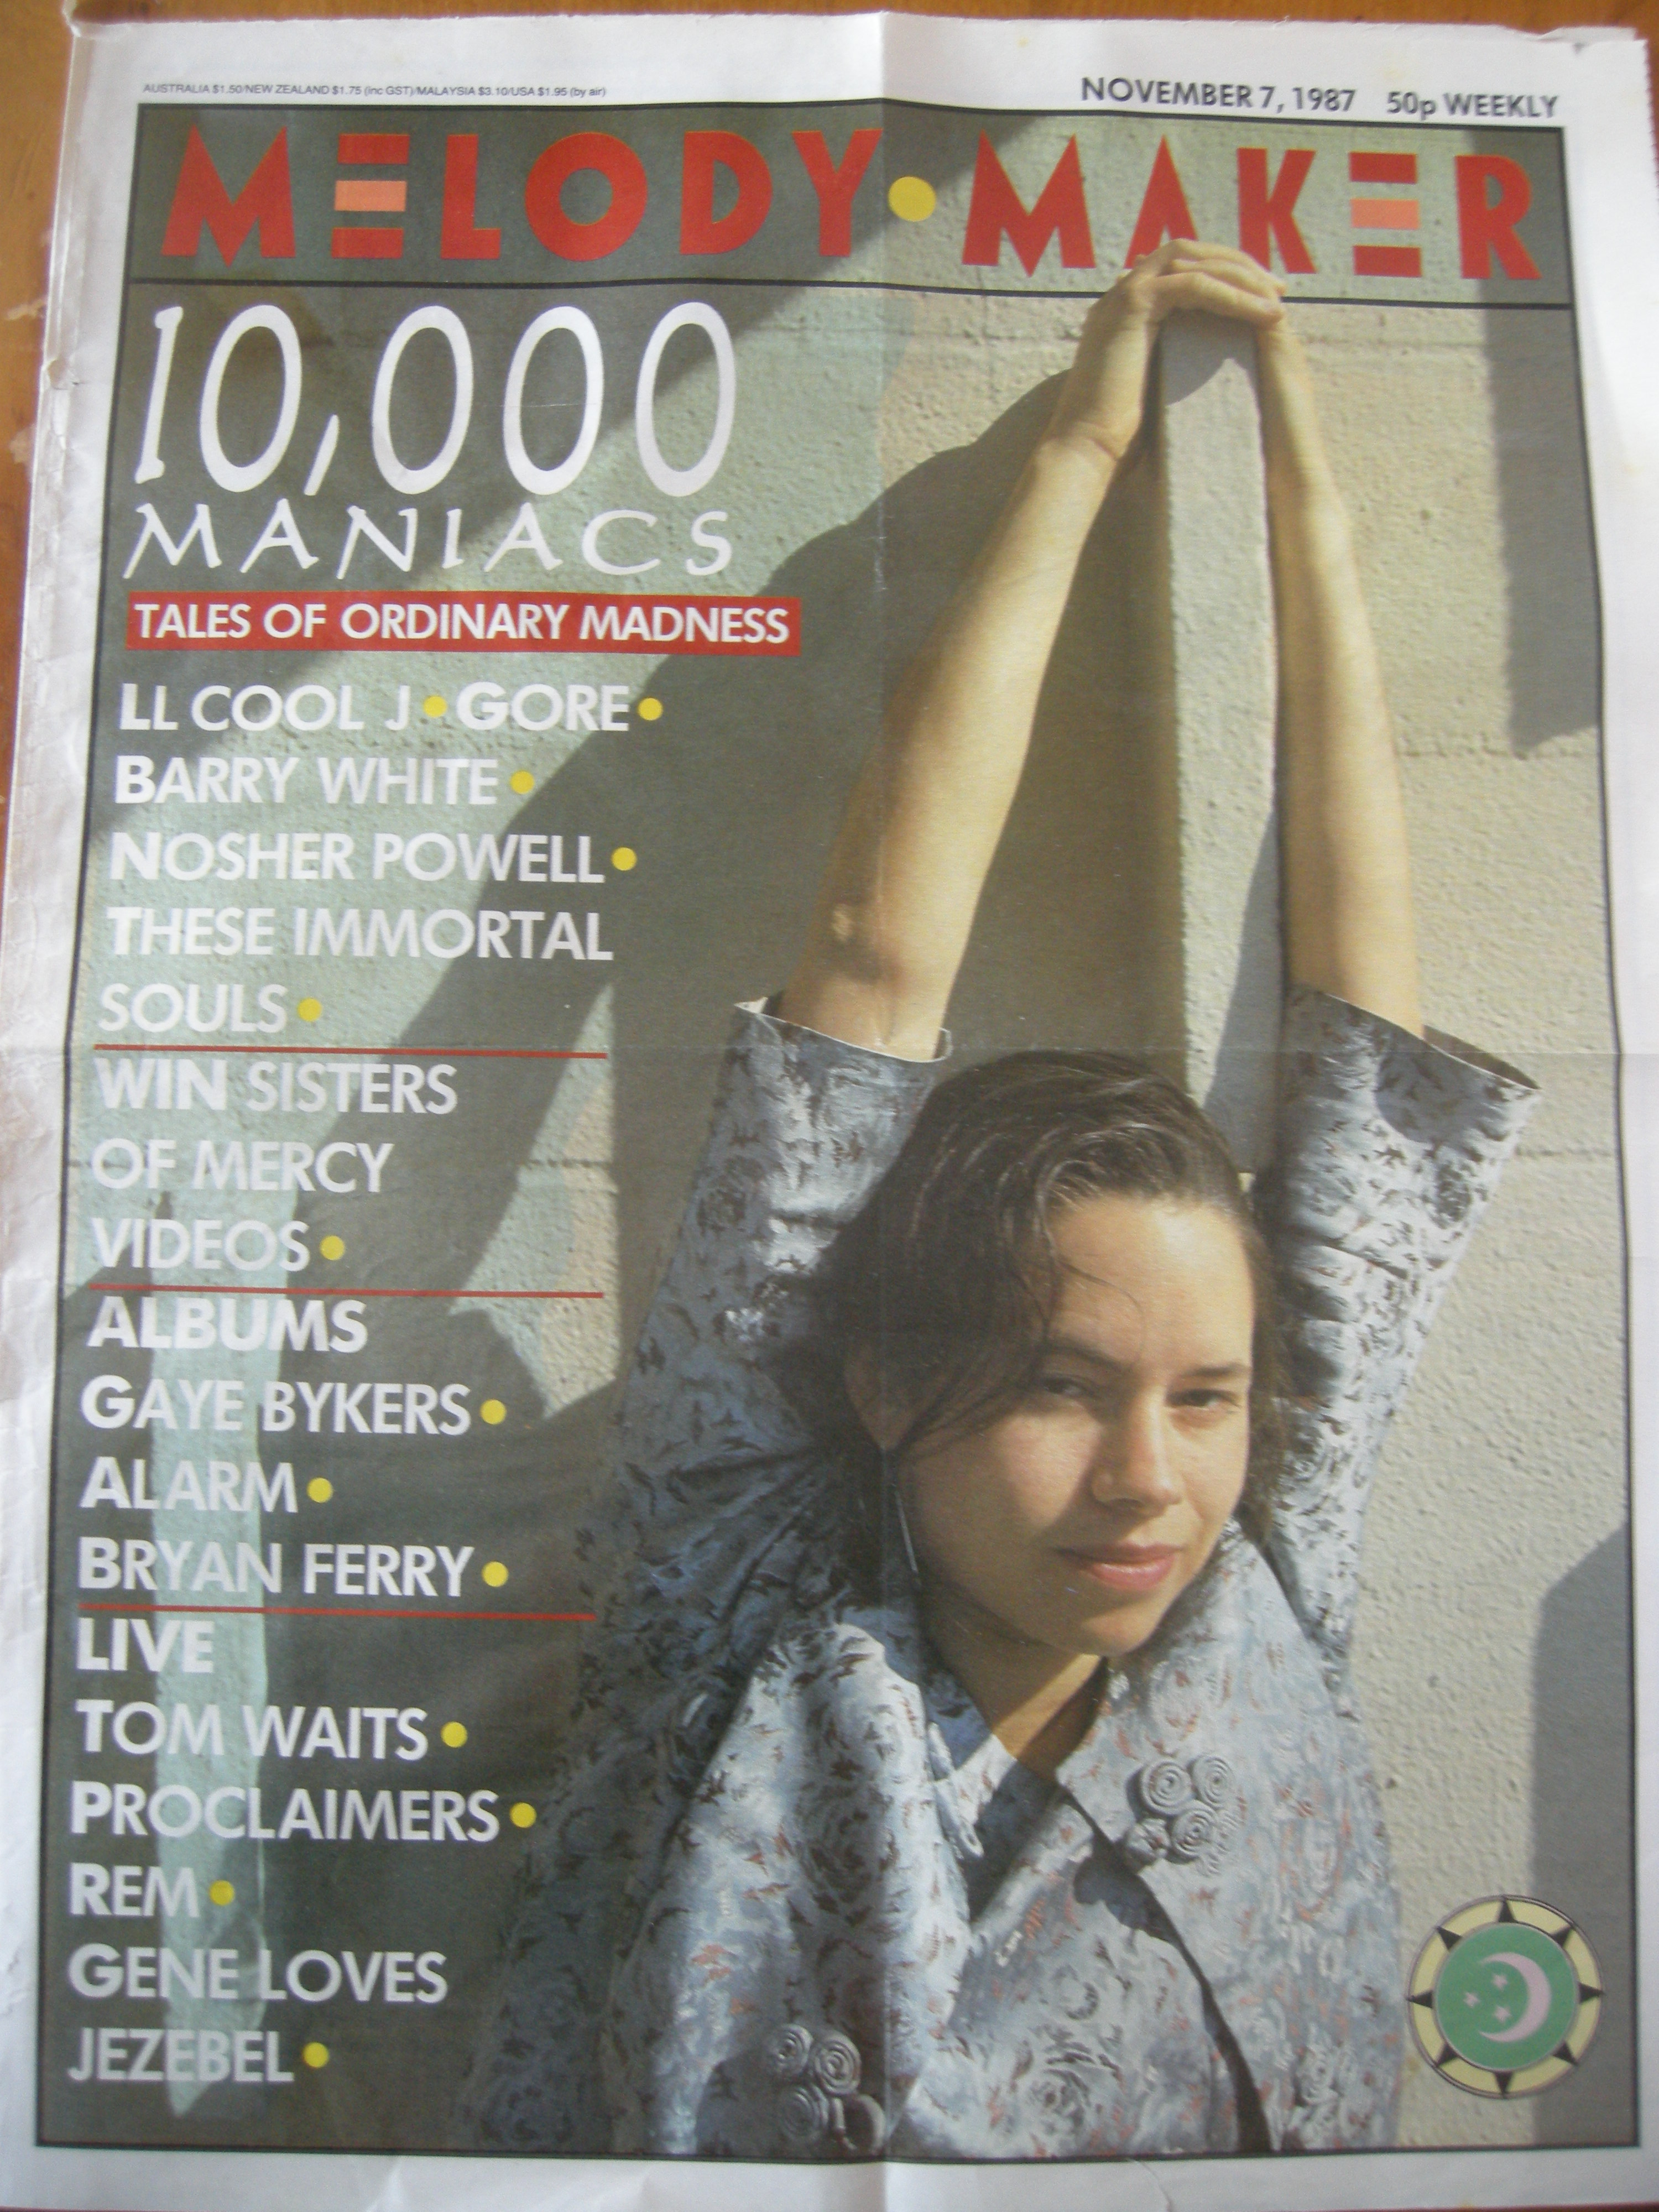 10,000 Maniacs Melody Maker cover